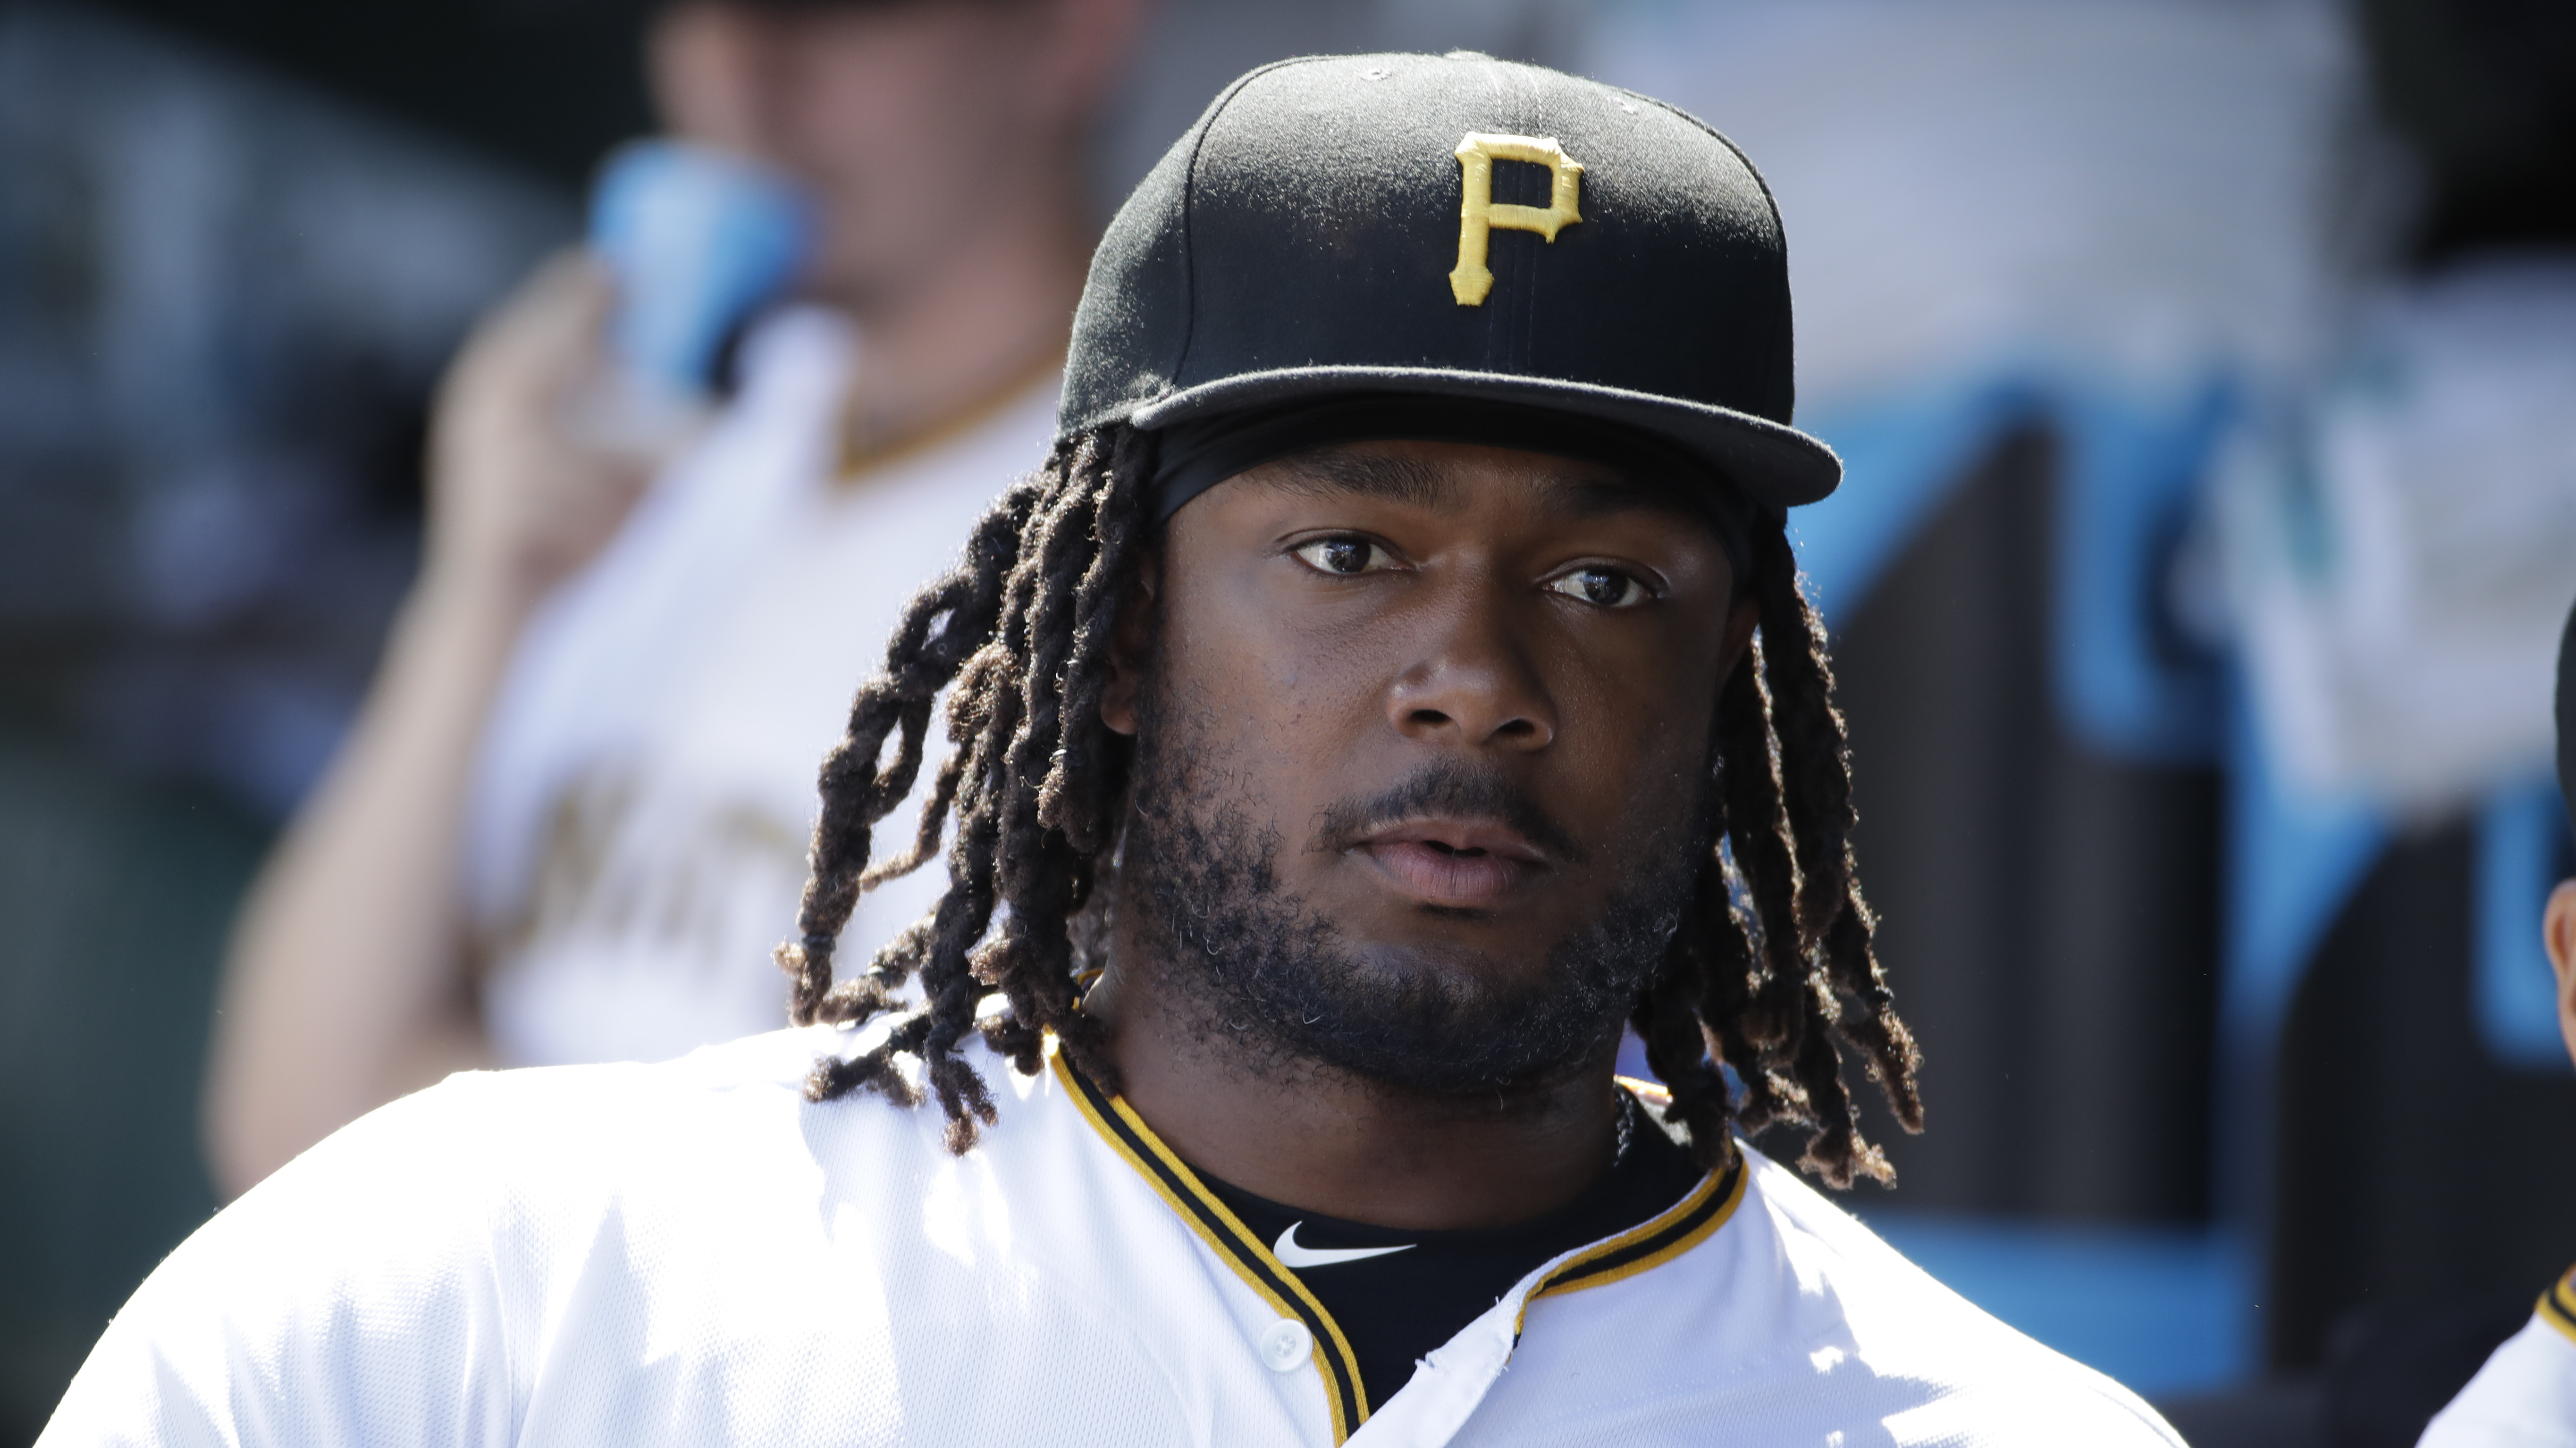 Eyeing Social Change Pirates Star Josh Bell Finds His Voice Wgn Radio 720 Chicago S Very Own See more of josh potter on facebook. copyright 2019 the associated press all rights reserved